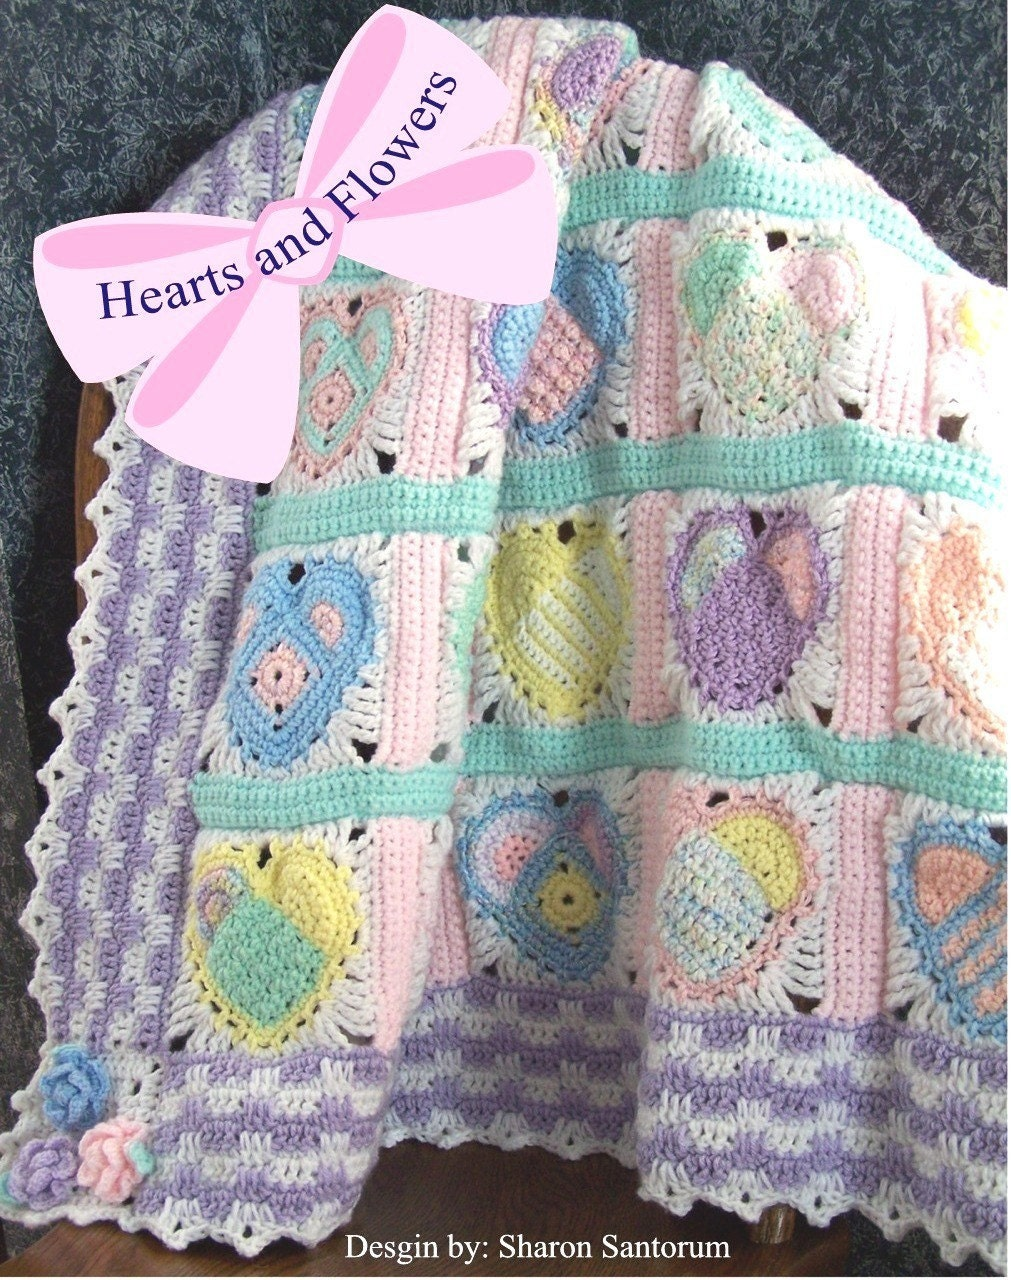 Baby Zoo Afghan Crochet Pattern : Hearts and Flowers Baby Afghan or Blanket Crochet by ...